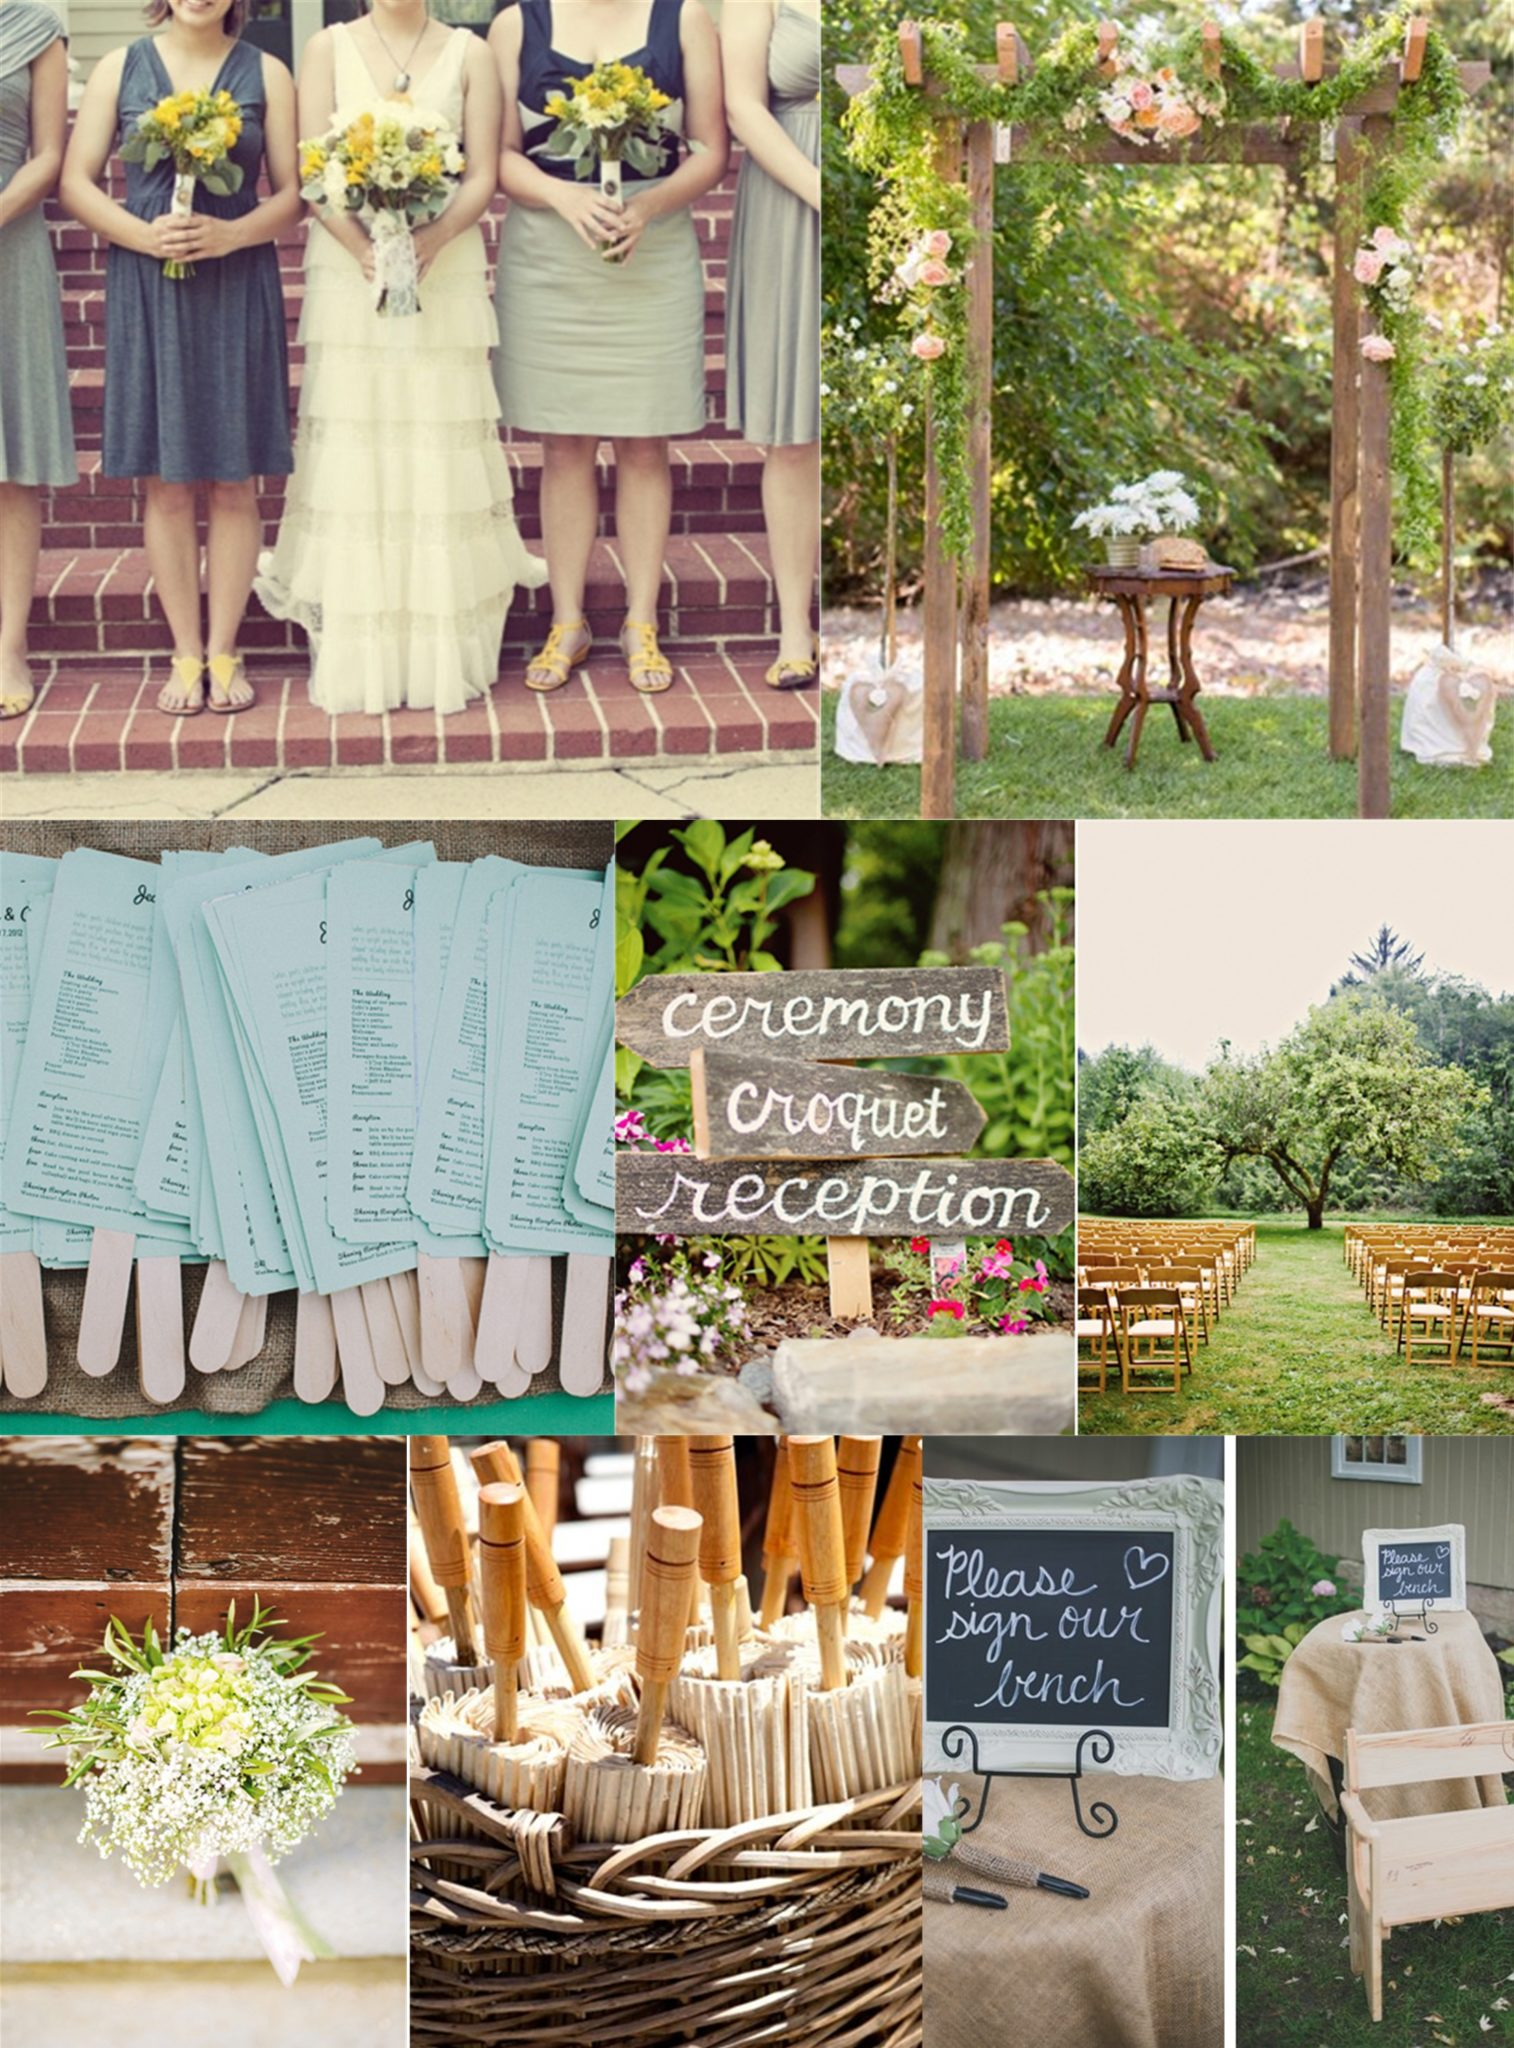 Essential Guide To A Backyard Wedding On A Budget - Small backyard wedding ideas